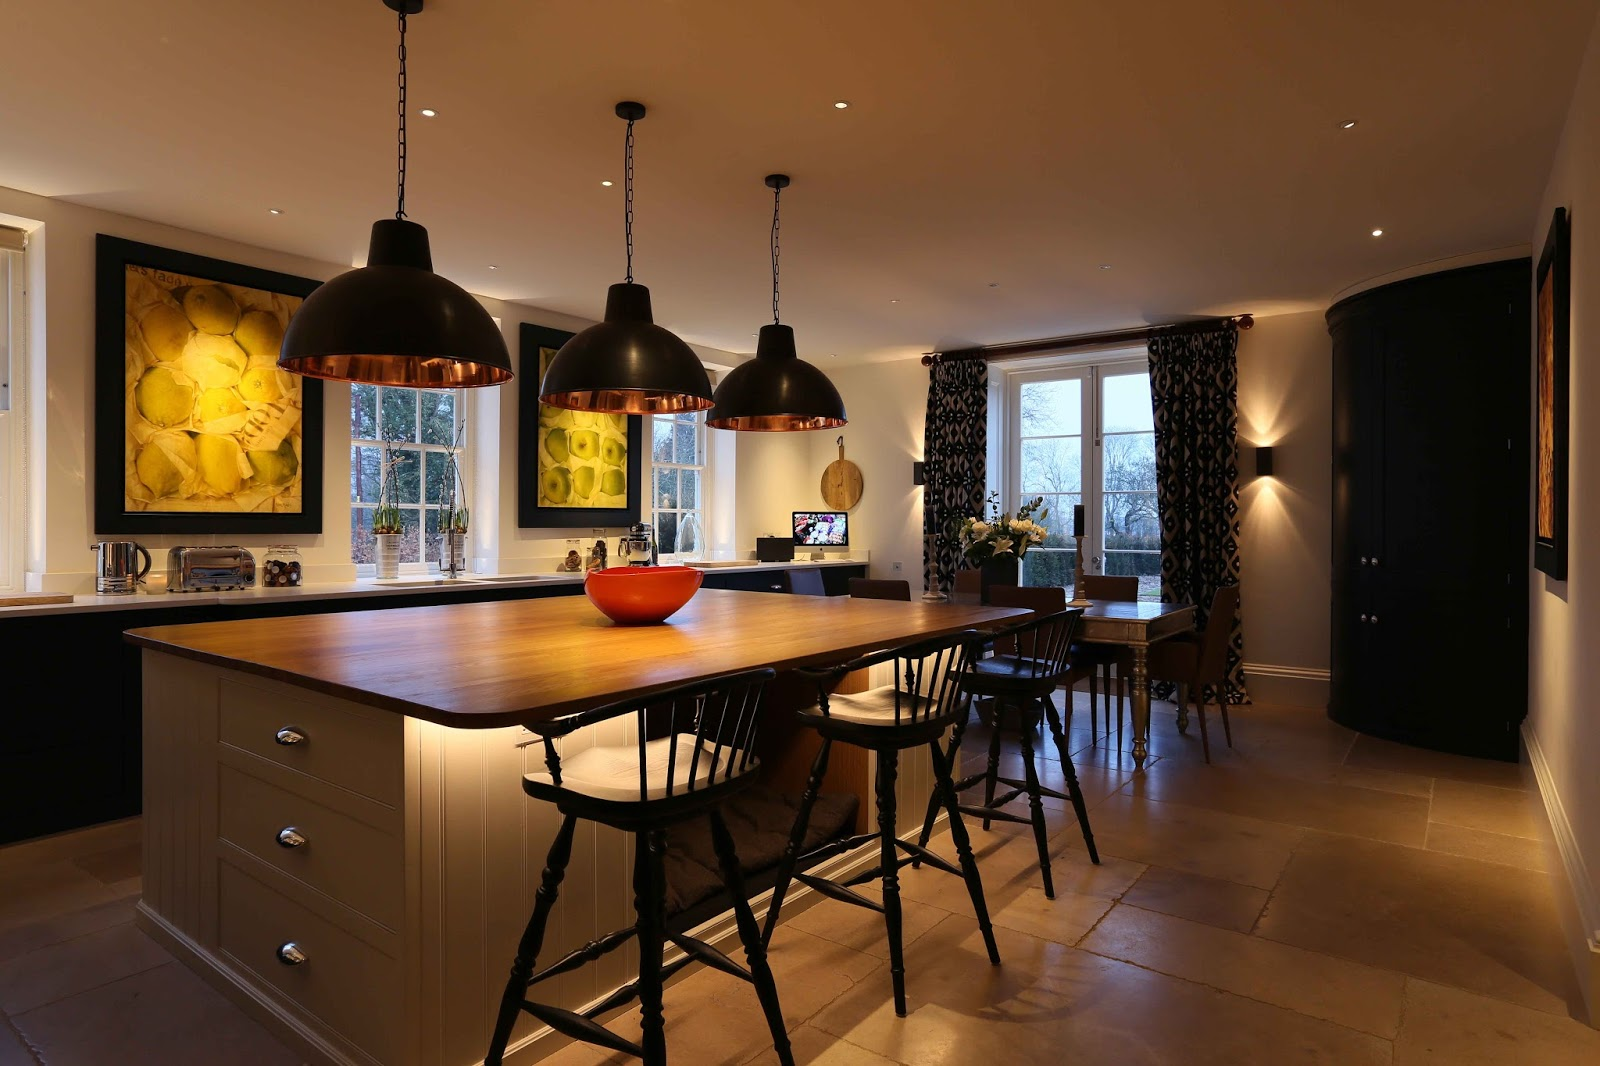 Top 10 Lighting Tips From Design Director Sally Storey